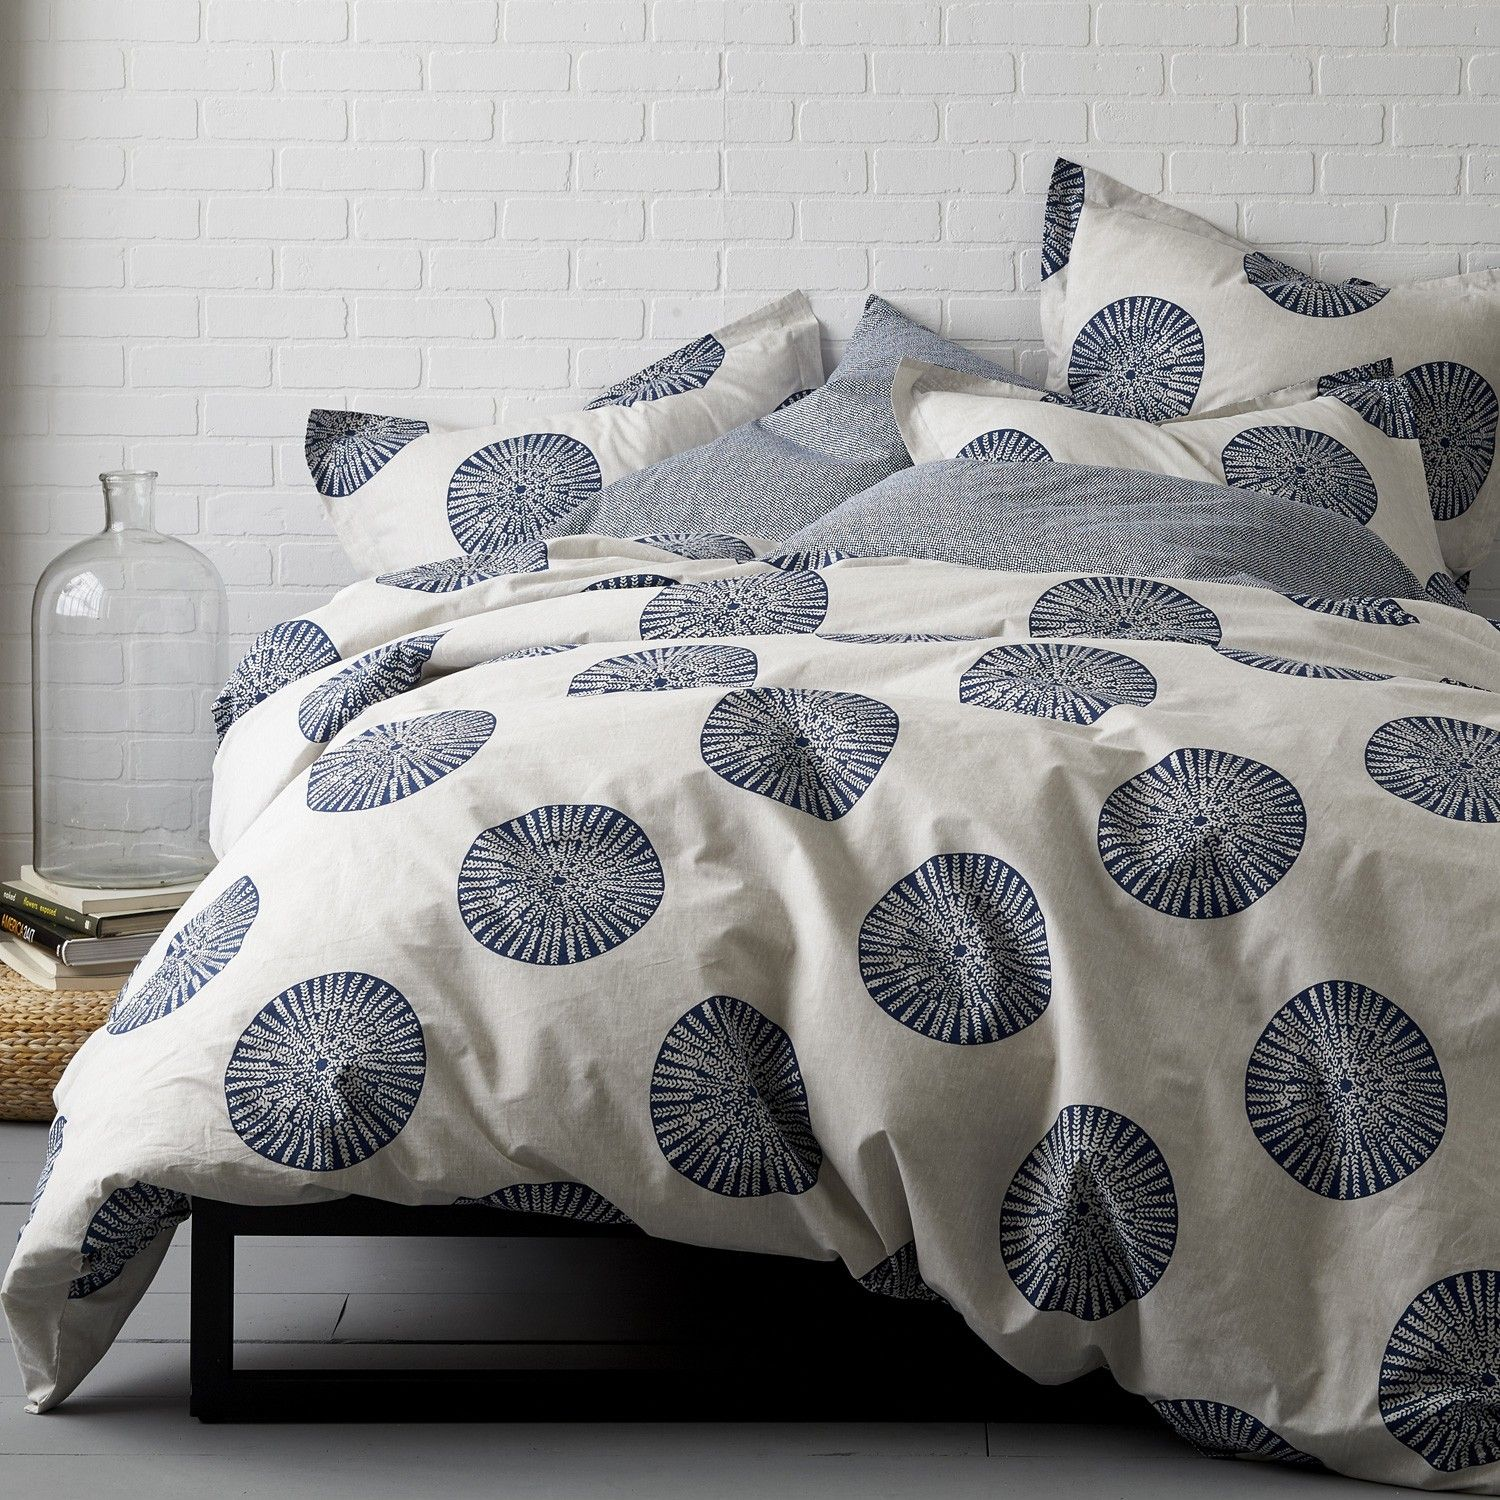 Artistic Duvet Cover And Sham With Sundial Motif On A Textural  Stone Colored Ground. Woven Of 100% Certified Organic Cotton. 200 Thread  Count.